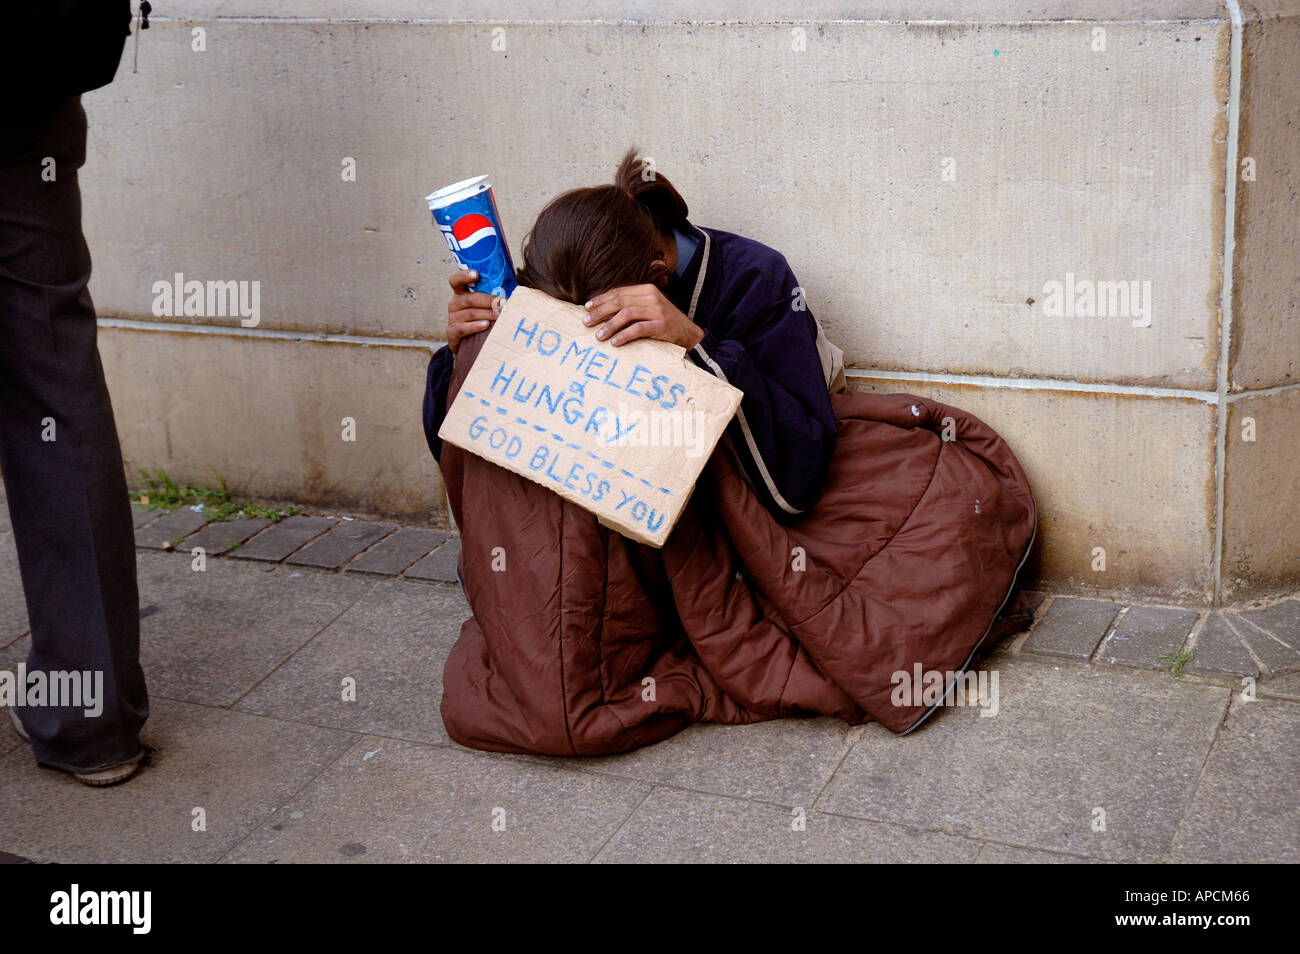 Young person homeless hungry and begging in London. Stock Photo